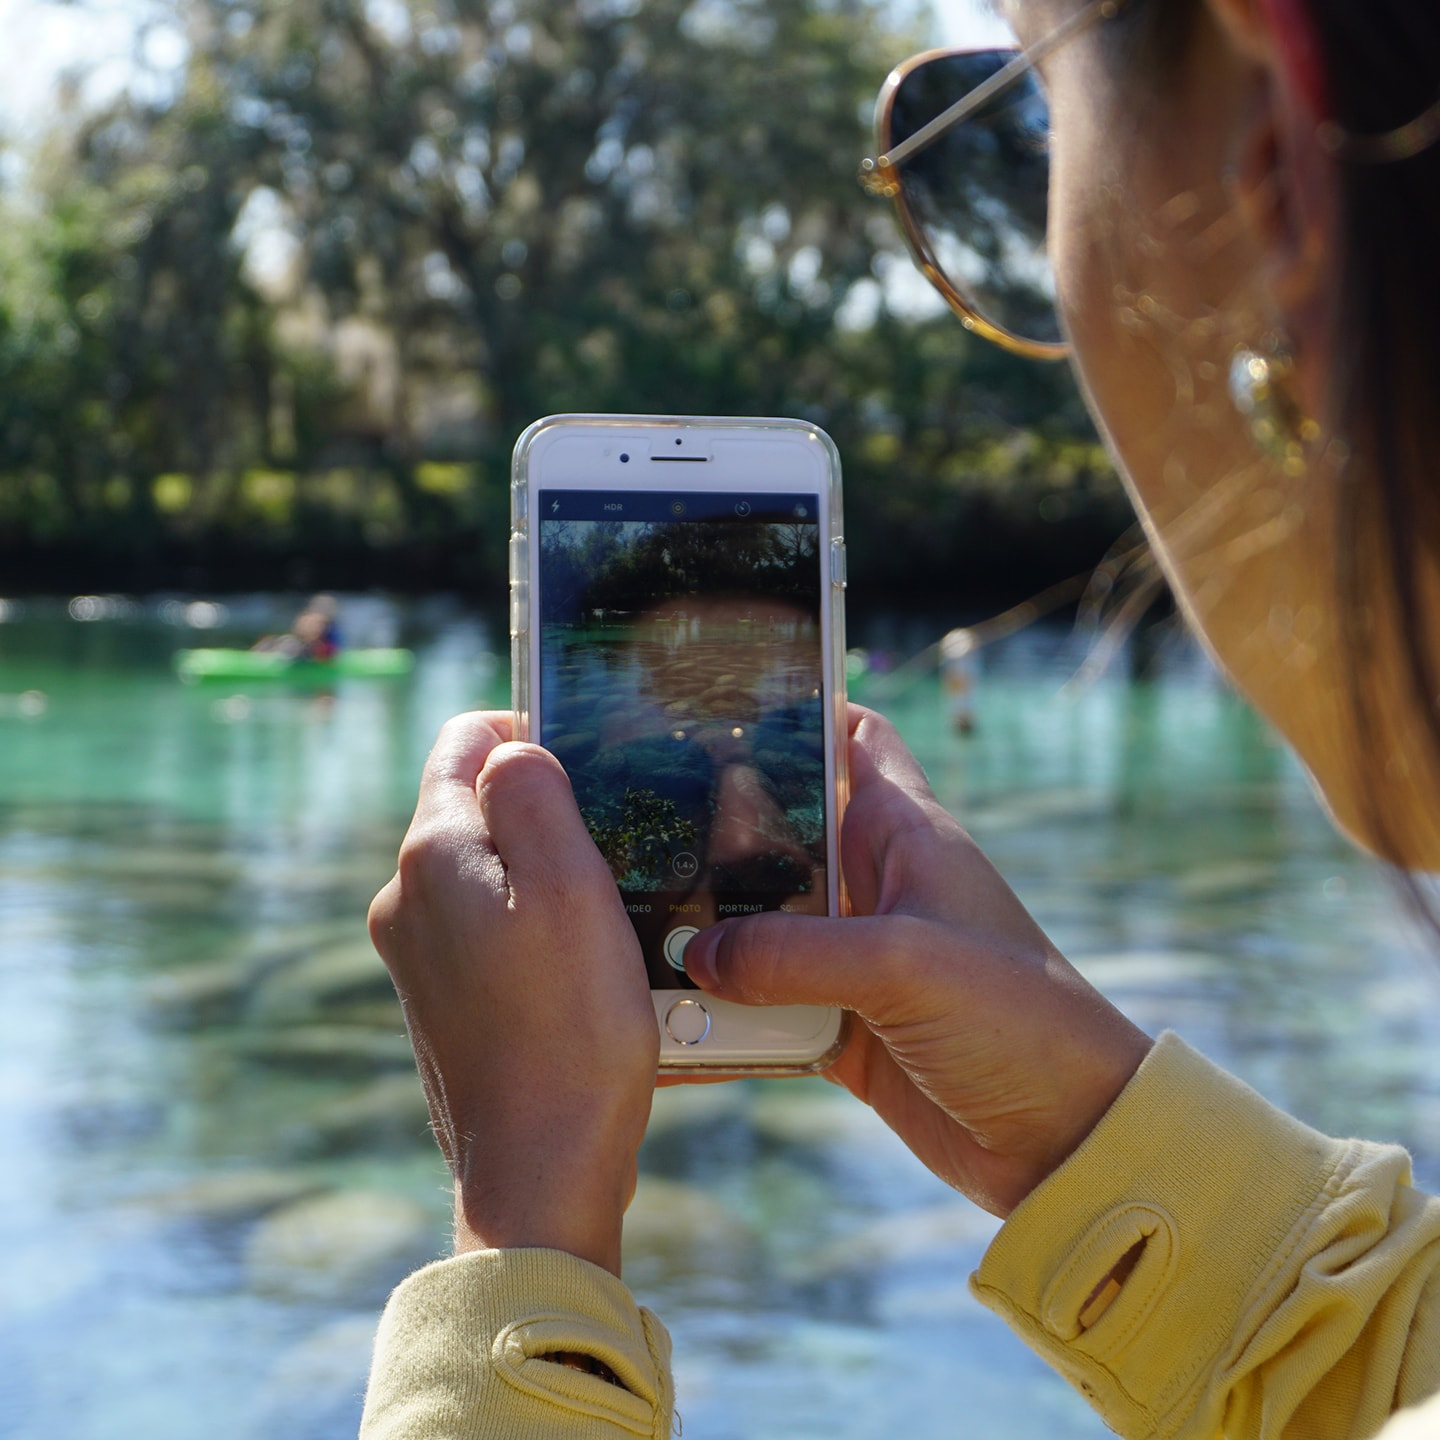 A girl taking a photo of manatees on her iphone.